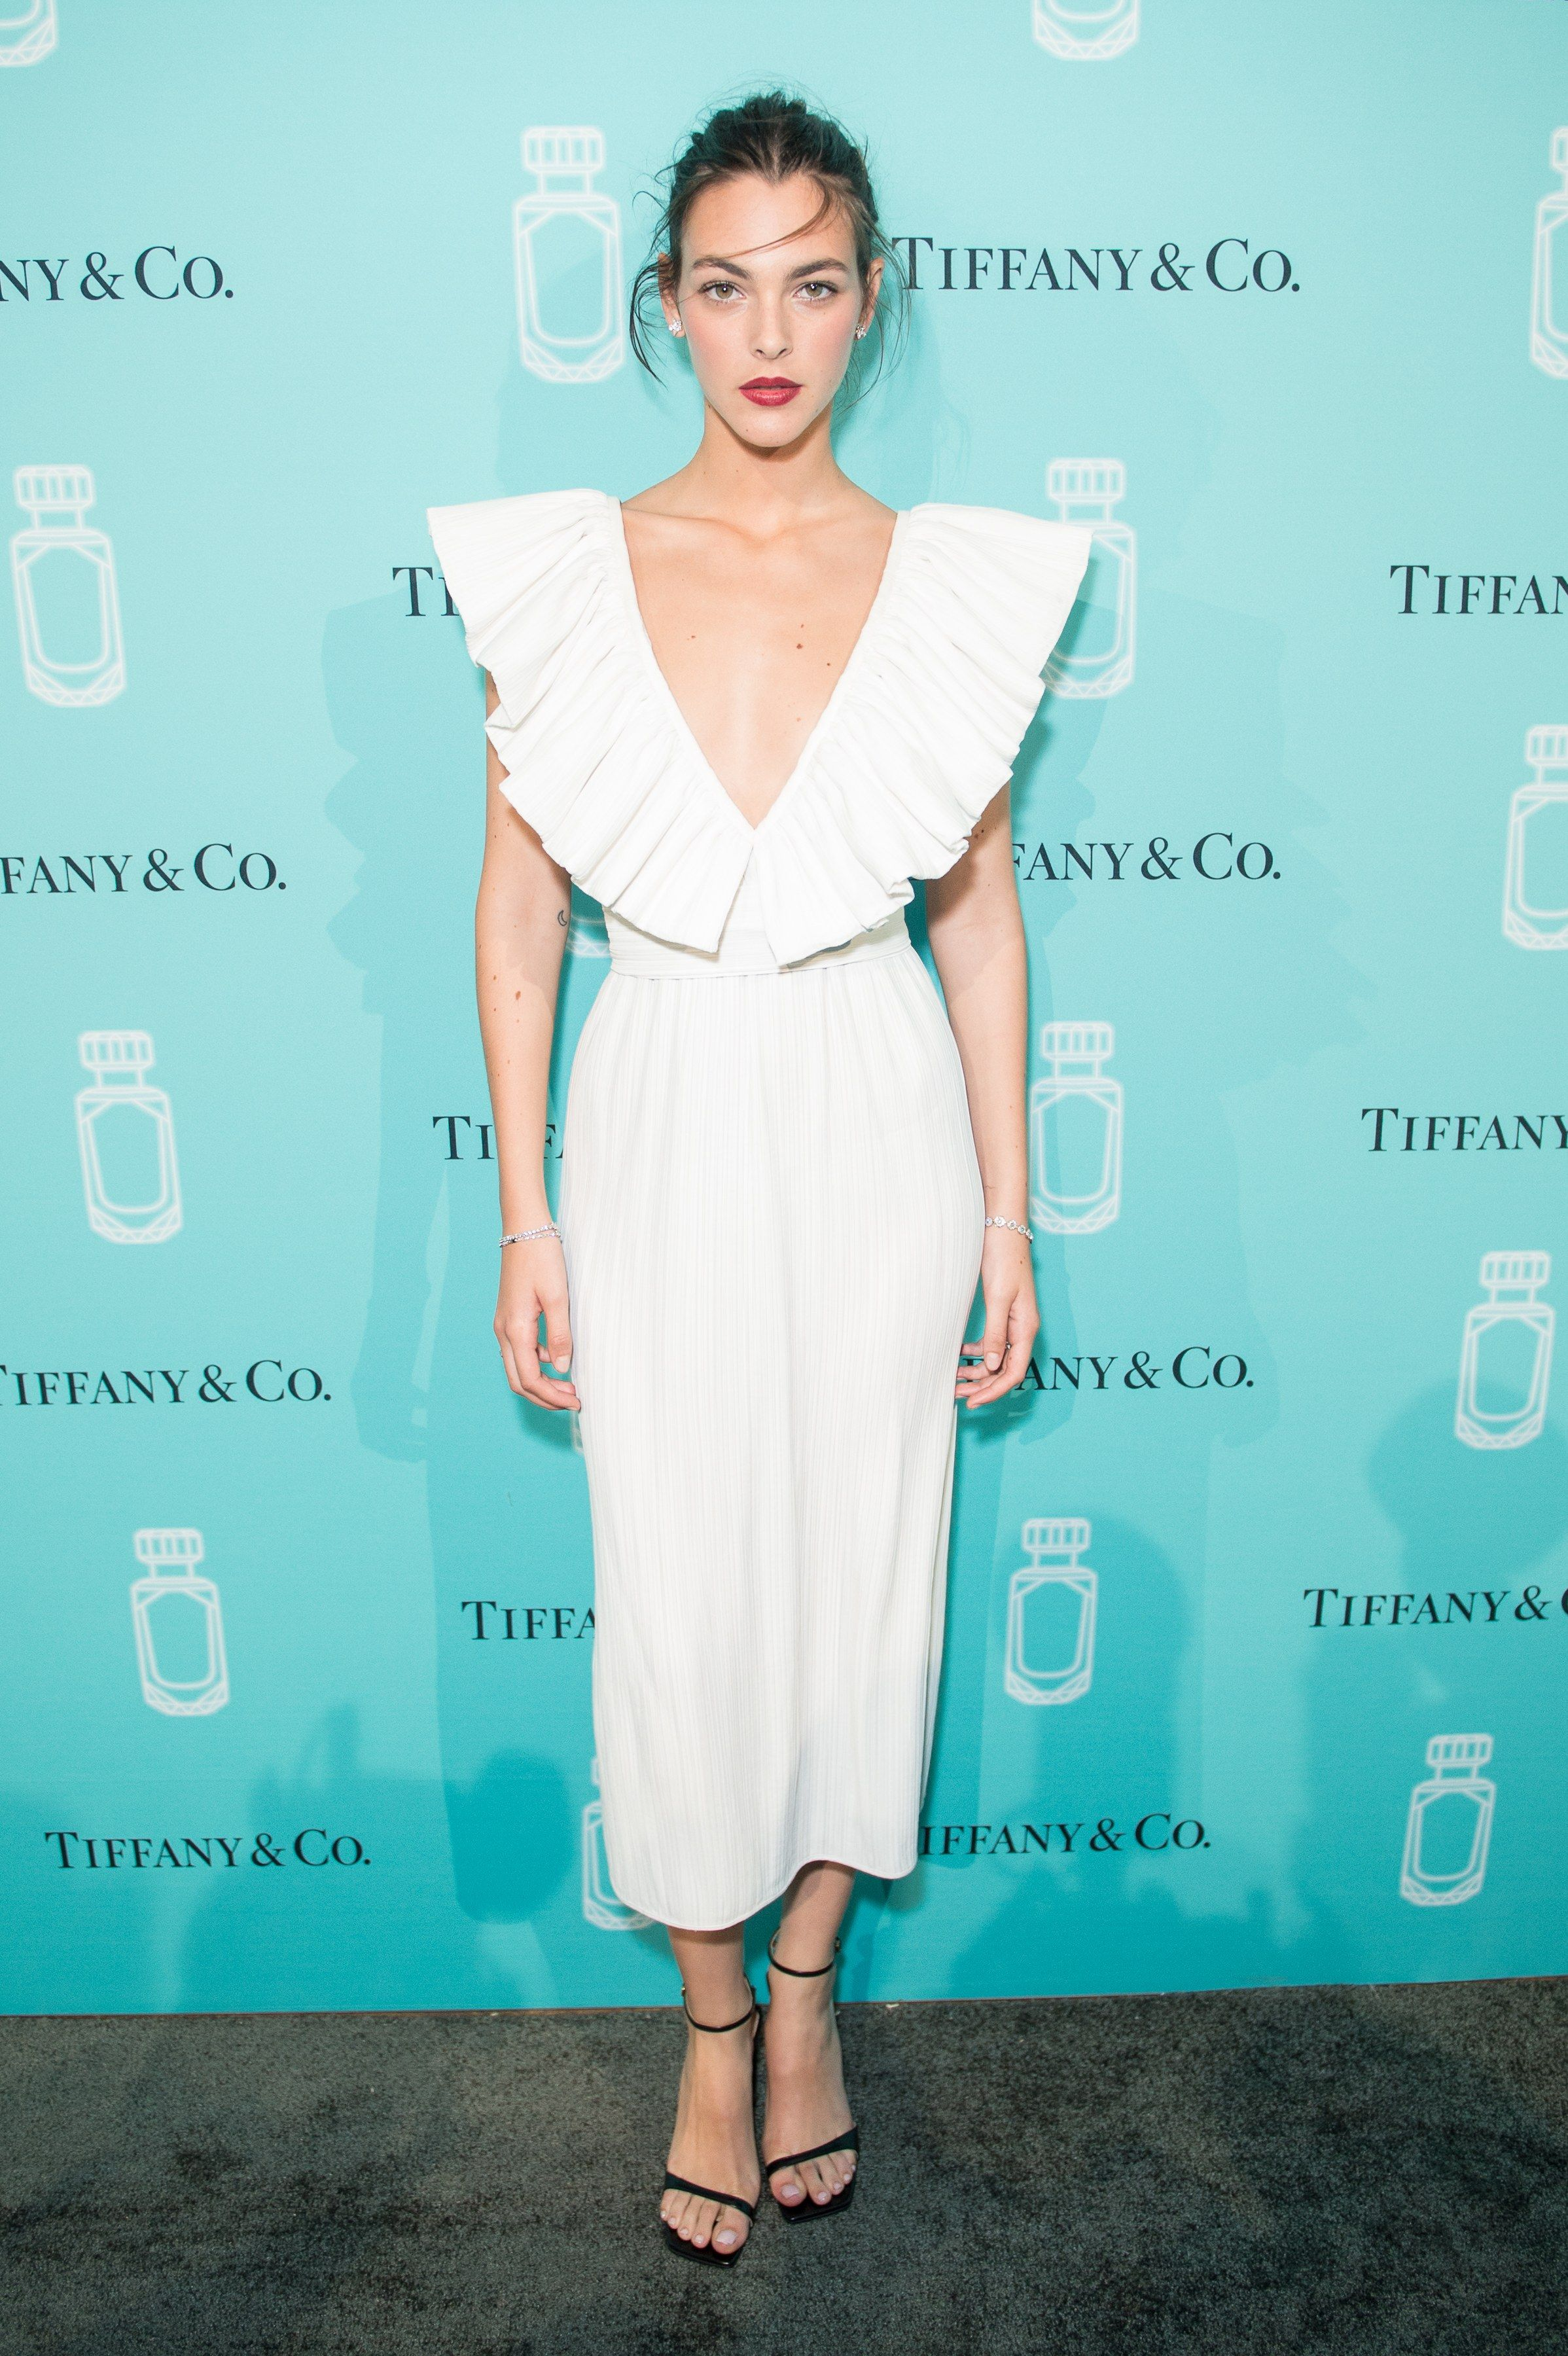 From selena gomez to bella hadid the best dressed celebrities of